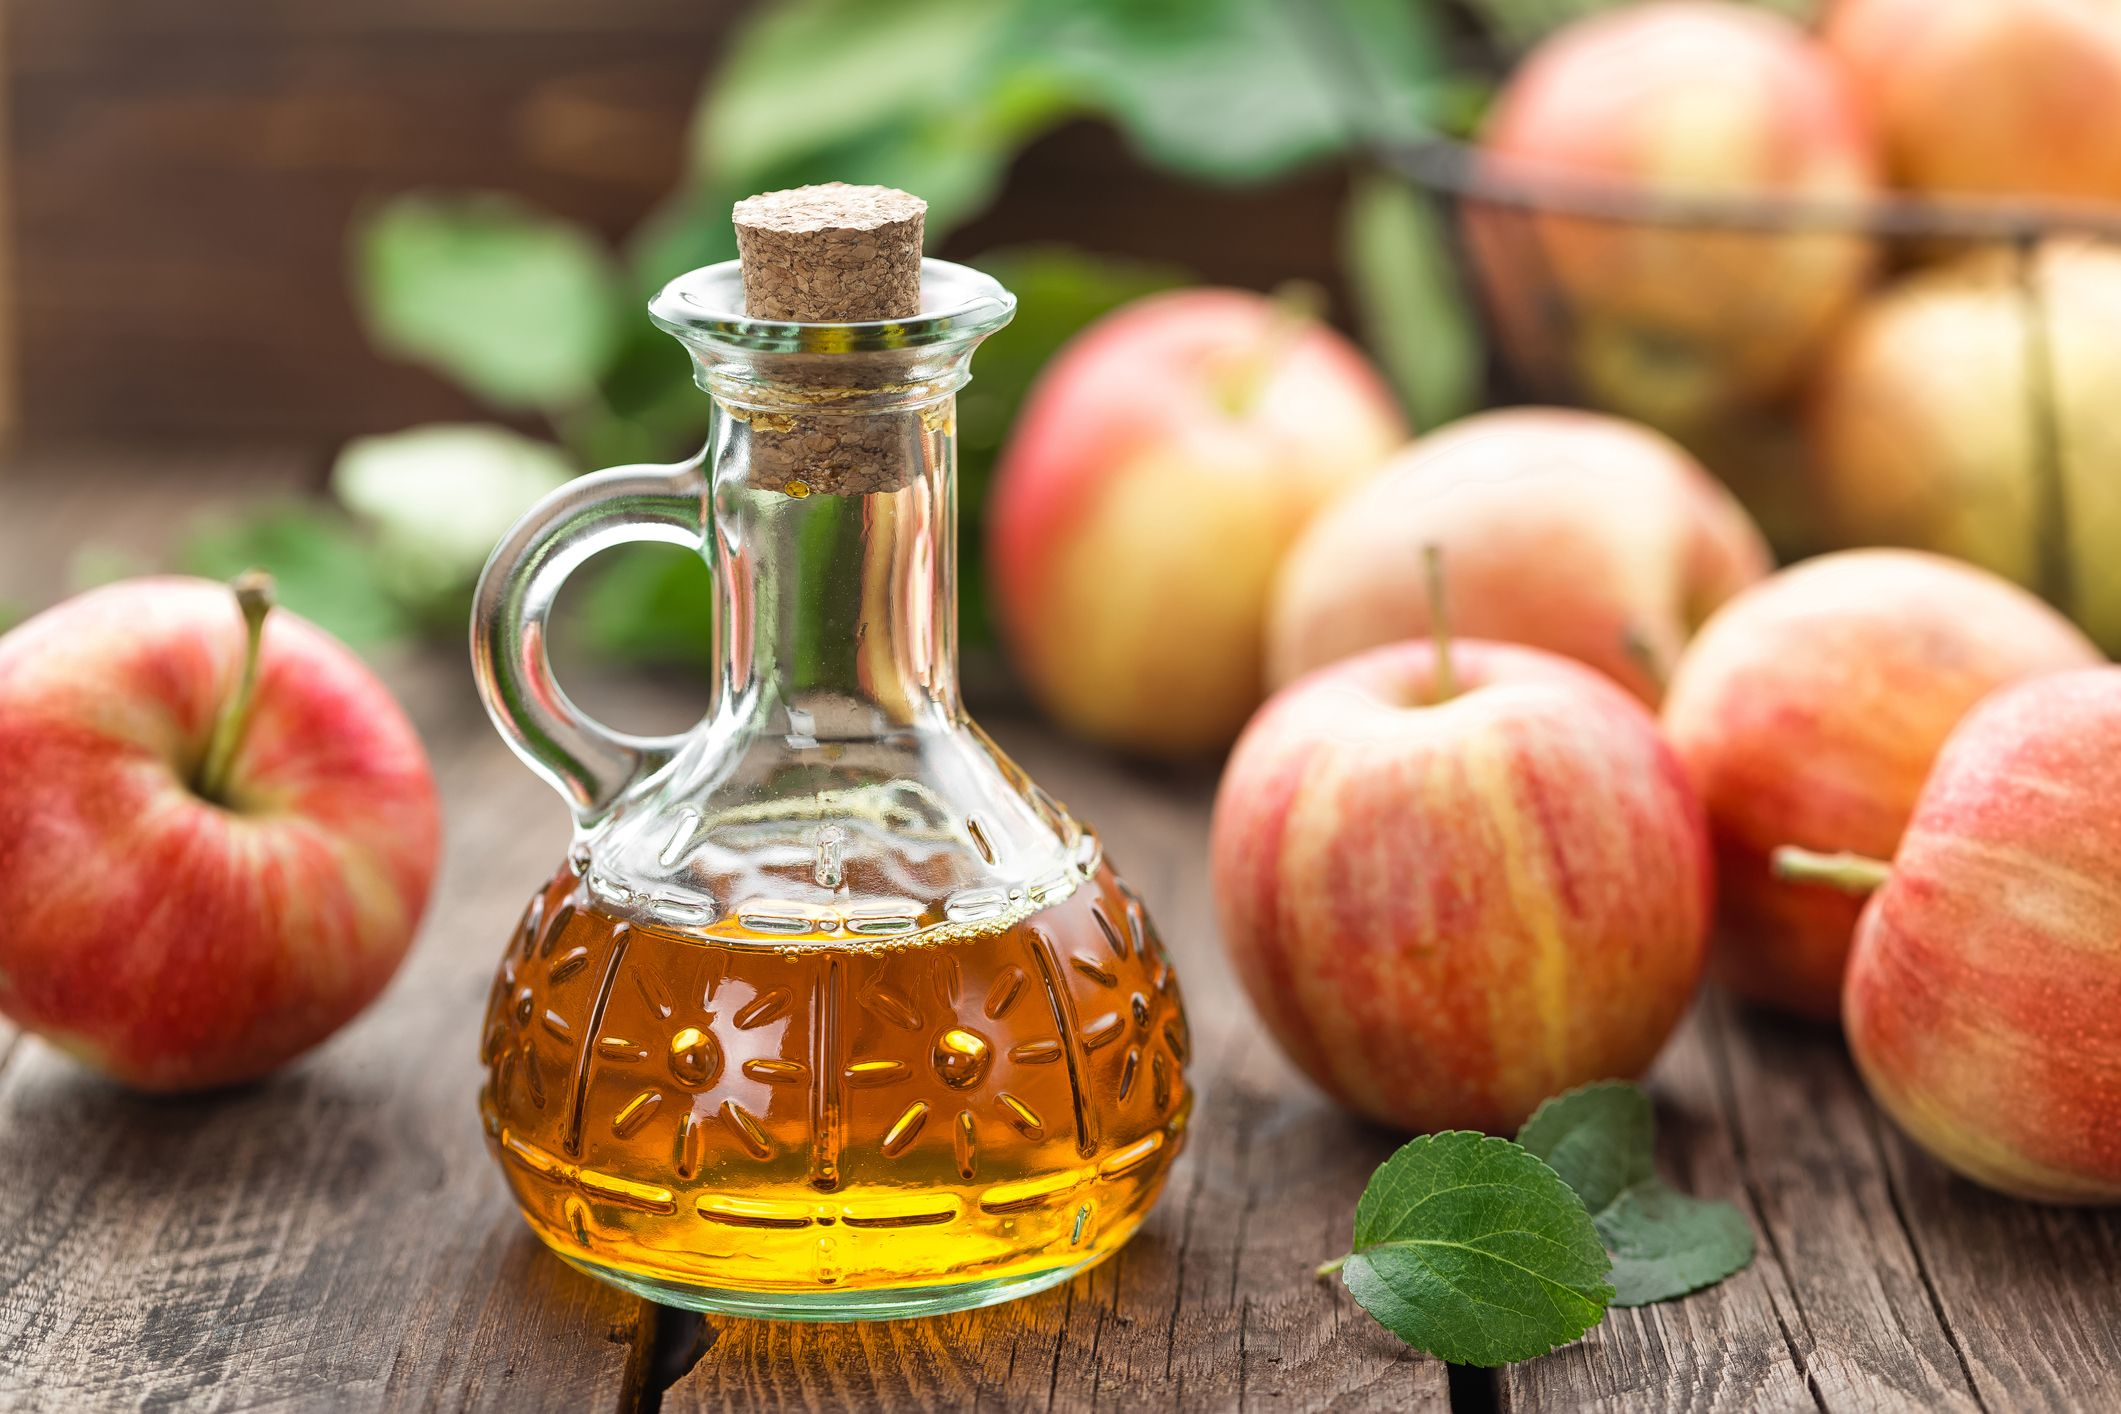 Apple Cider Vinegar For Acne: Does It Really Work? Derms Weigh In